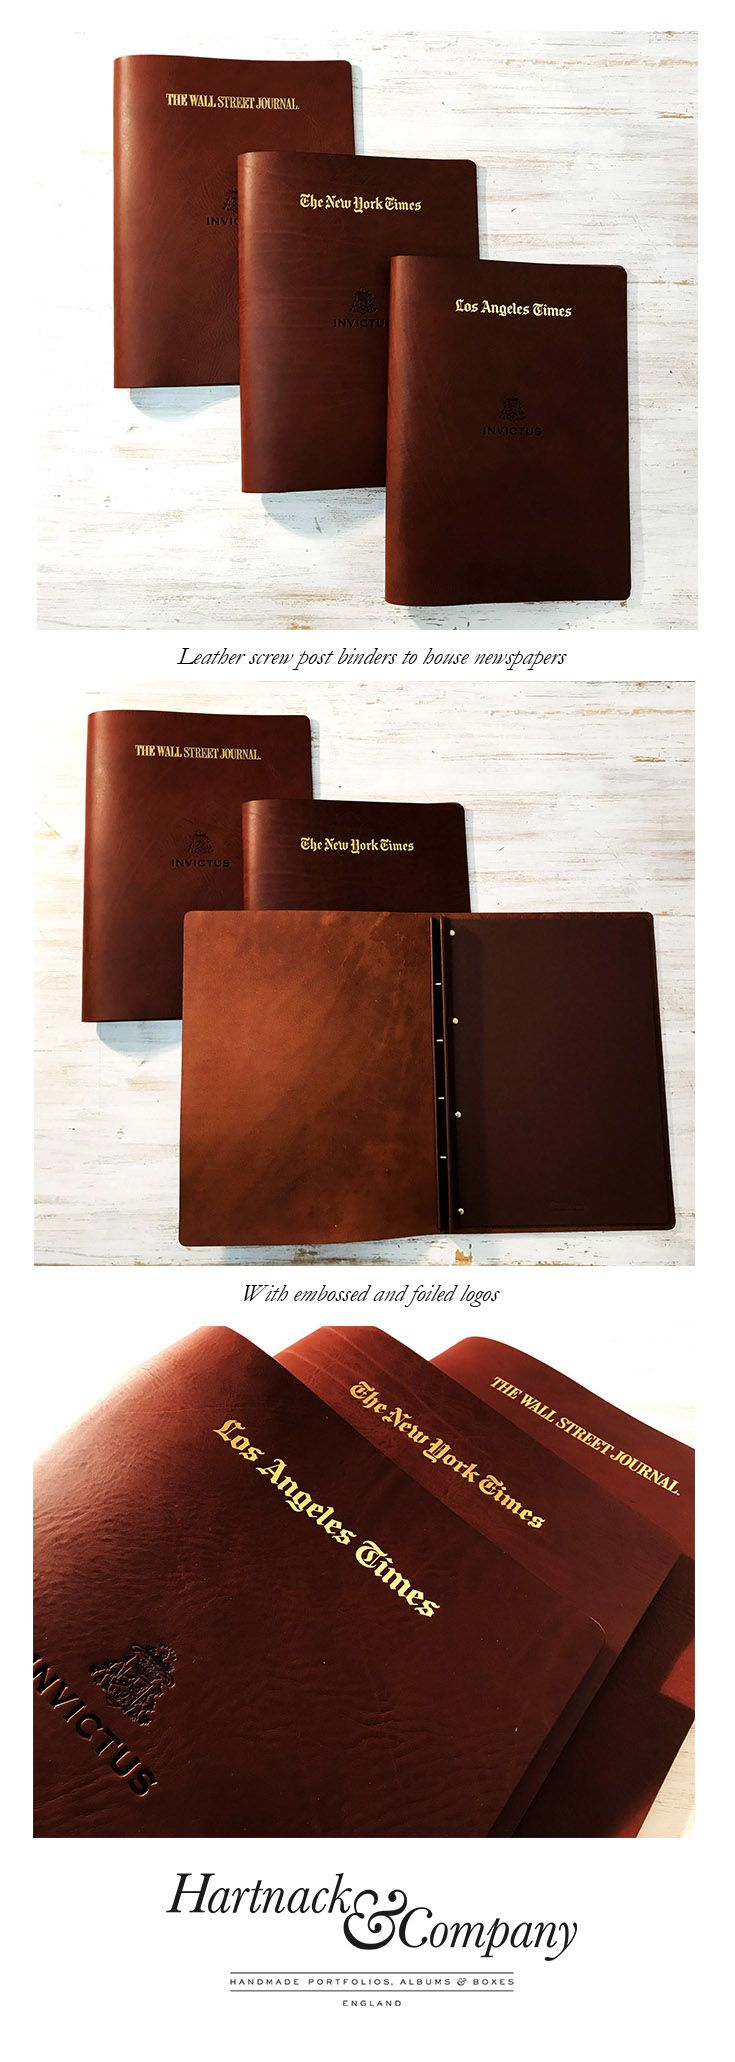 Leather portfolio cases business portfolios folders embossed with - Leather Screw Post Binders For Newspapers On A Super Yacht With Embossed And Foiled Logo